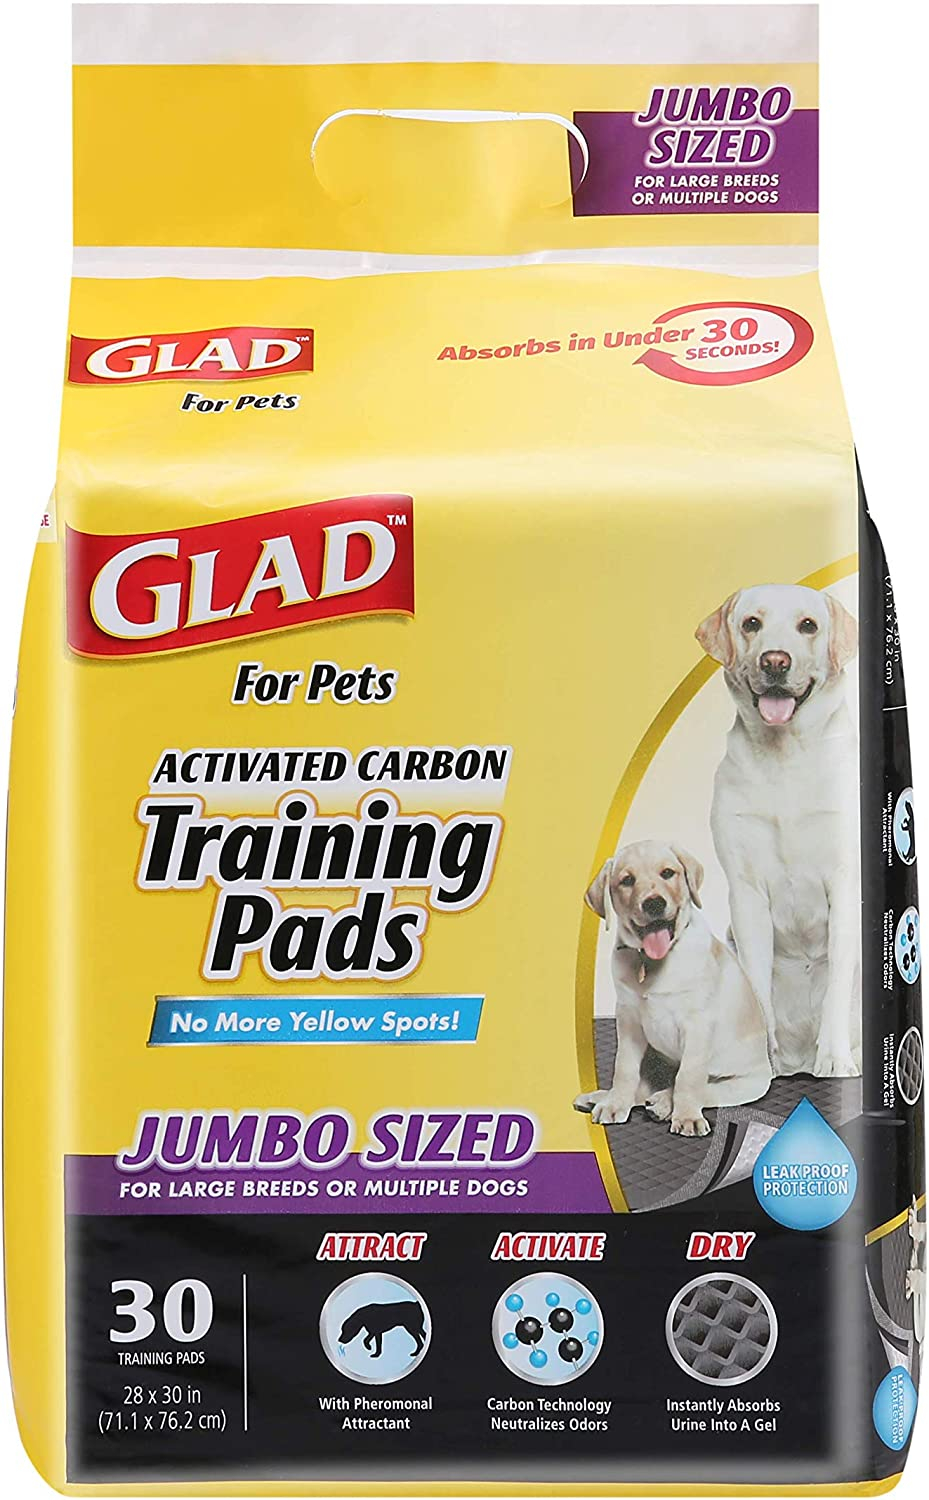 Glad for Pets JUMBO-SIZE Charcoal Puppy Branded Fixed price for sale goods Training Black Pads Pa